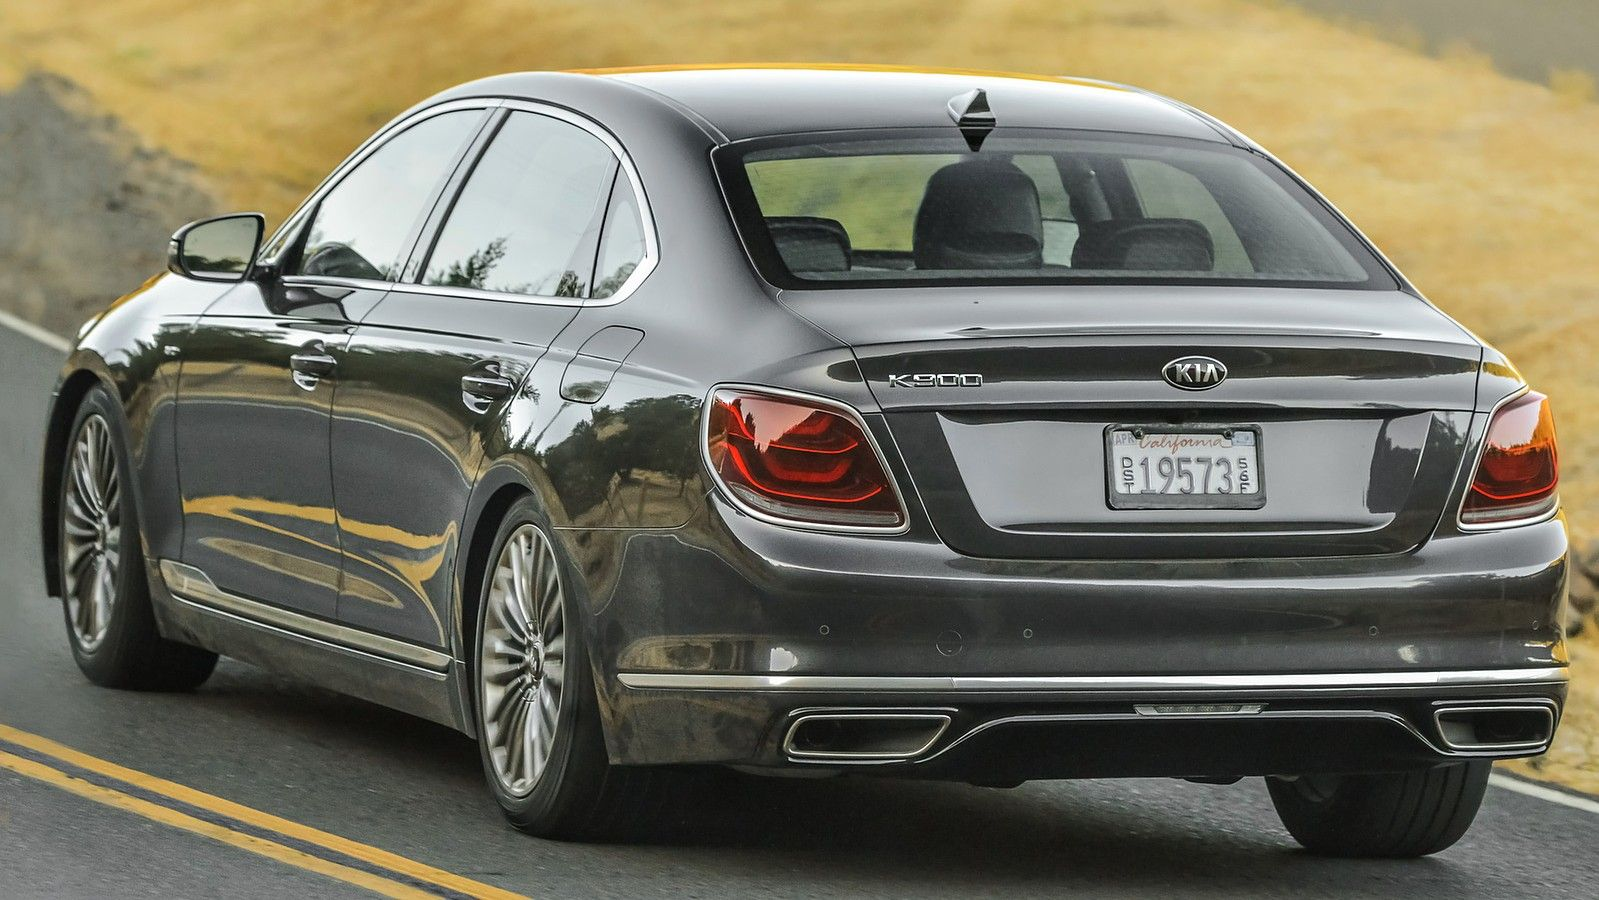 2020 Kia K900 rear view